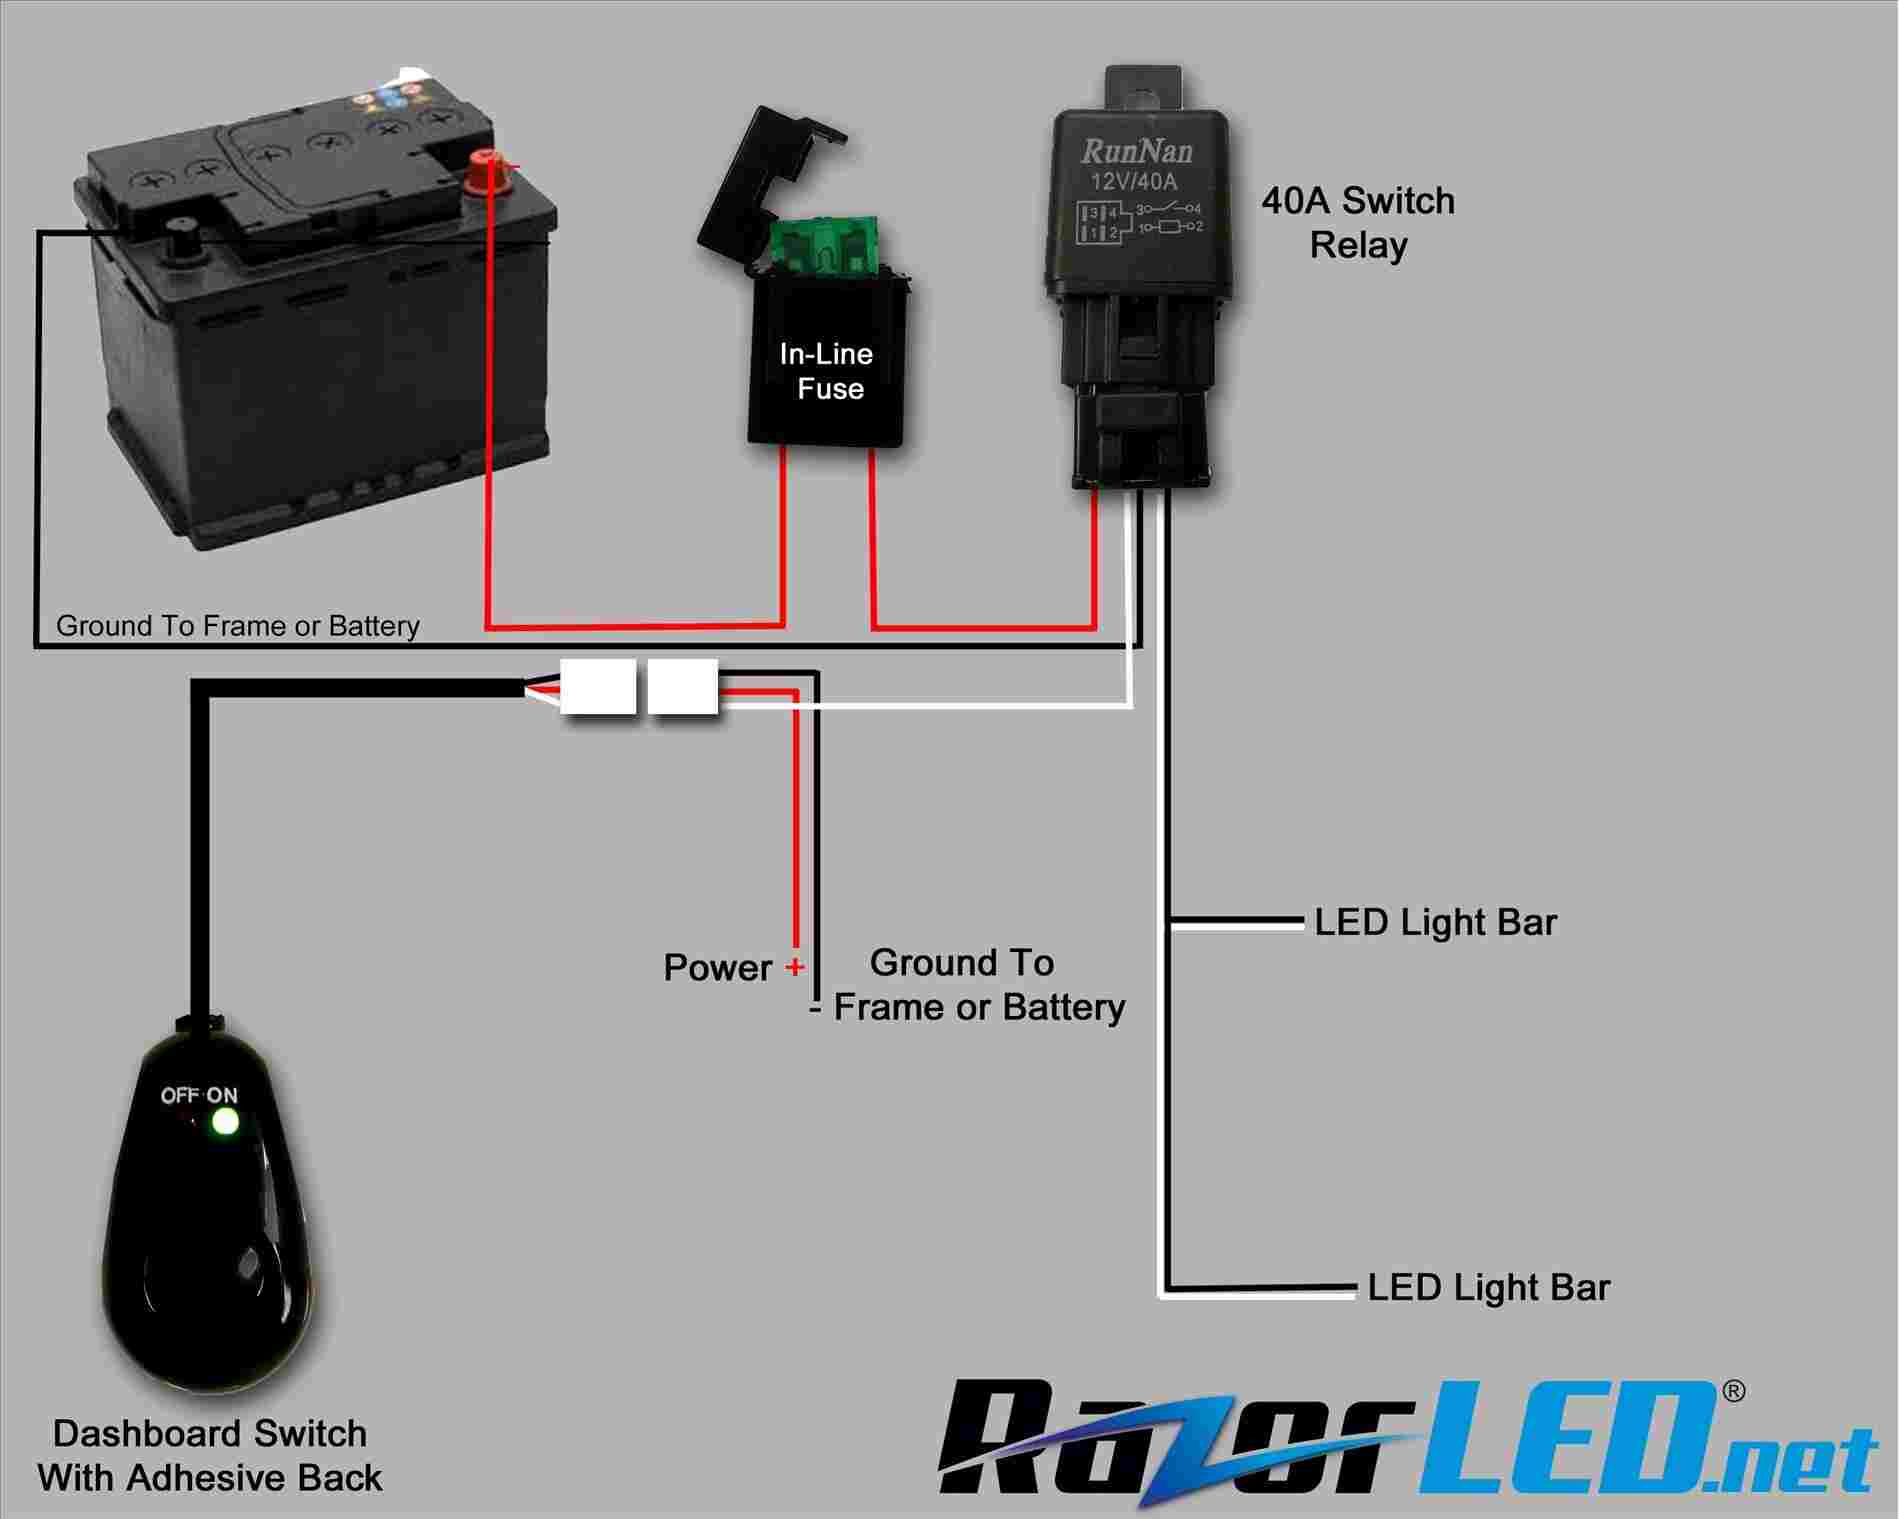 Wiring-Diagram-Webtor-Bunch-Ideas-Of-Simple-Led-Rhbritishpantoorg - Autofeel Light Bar Wiring Diagram